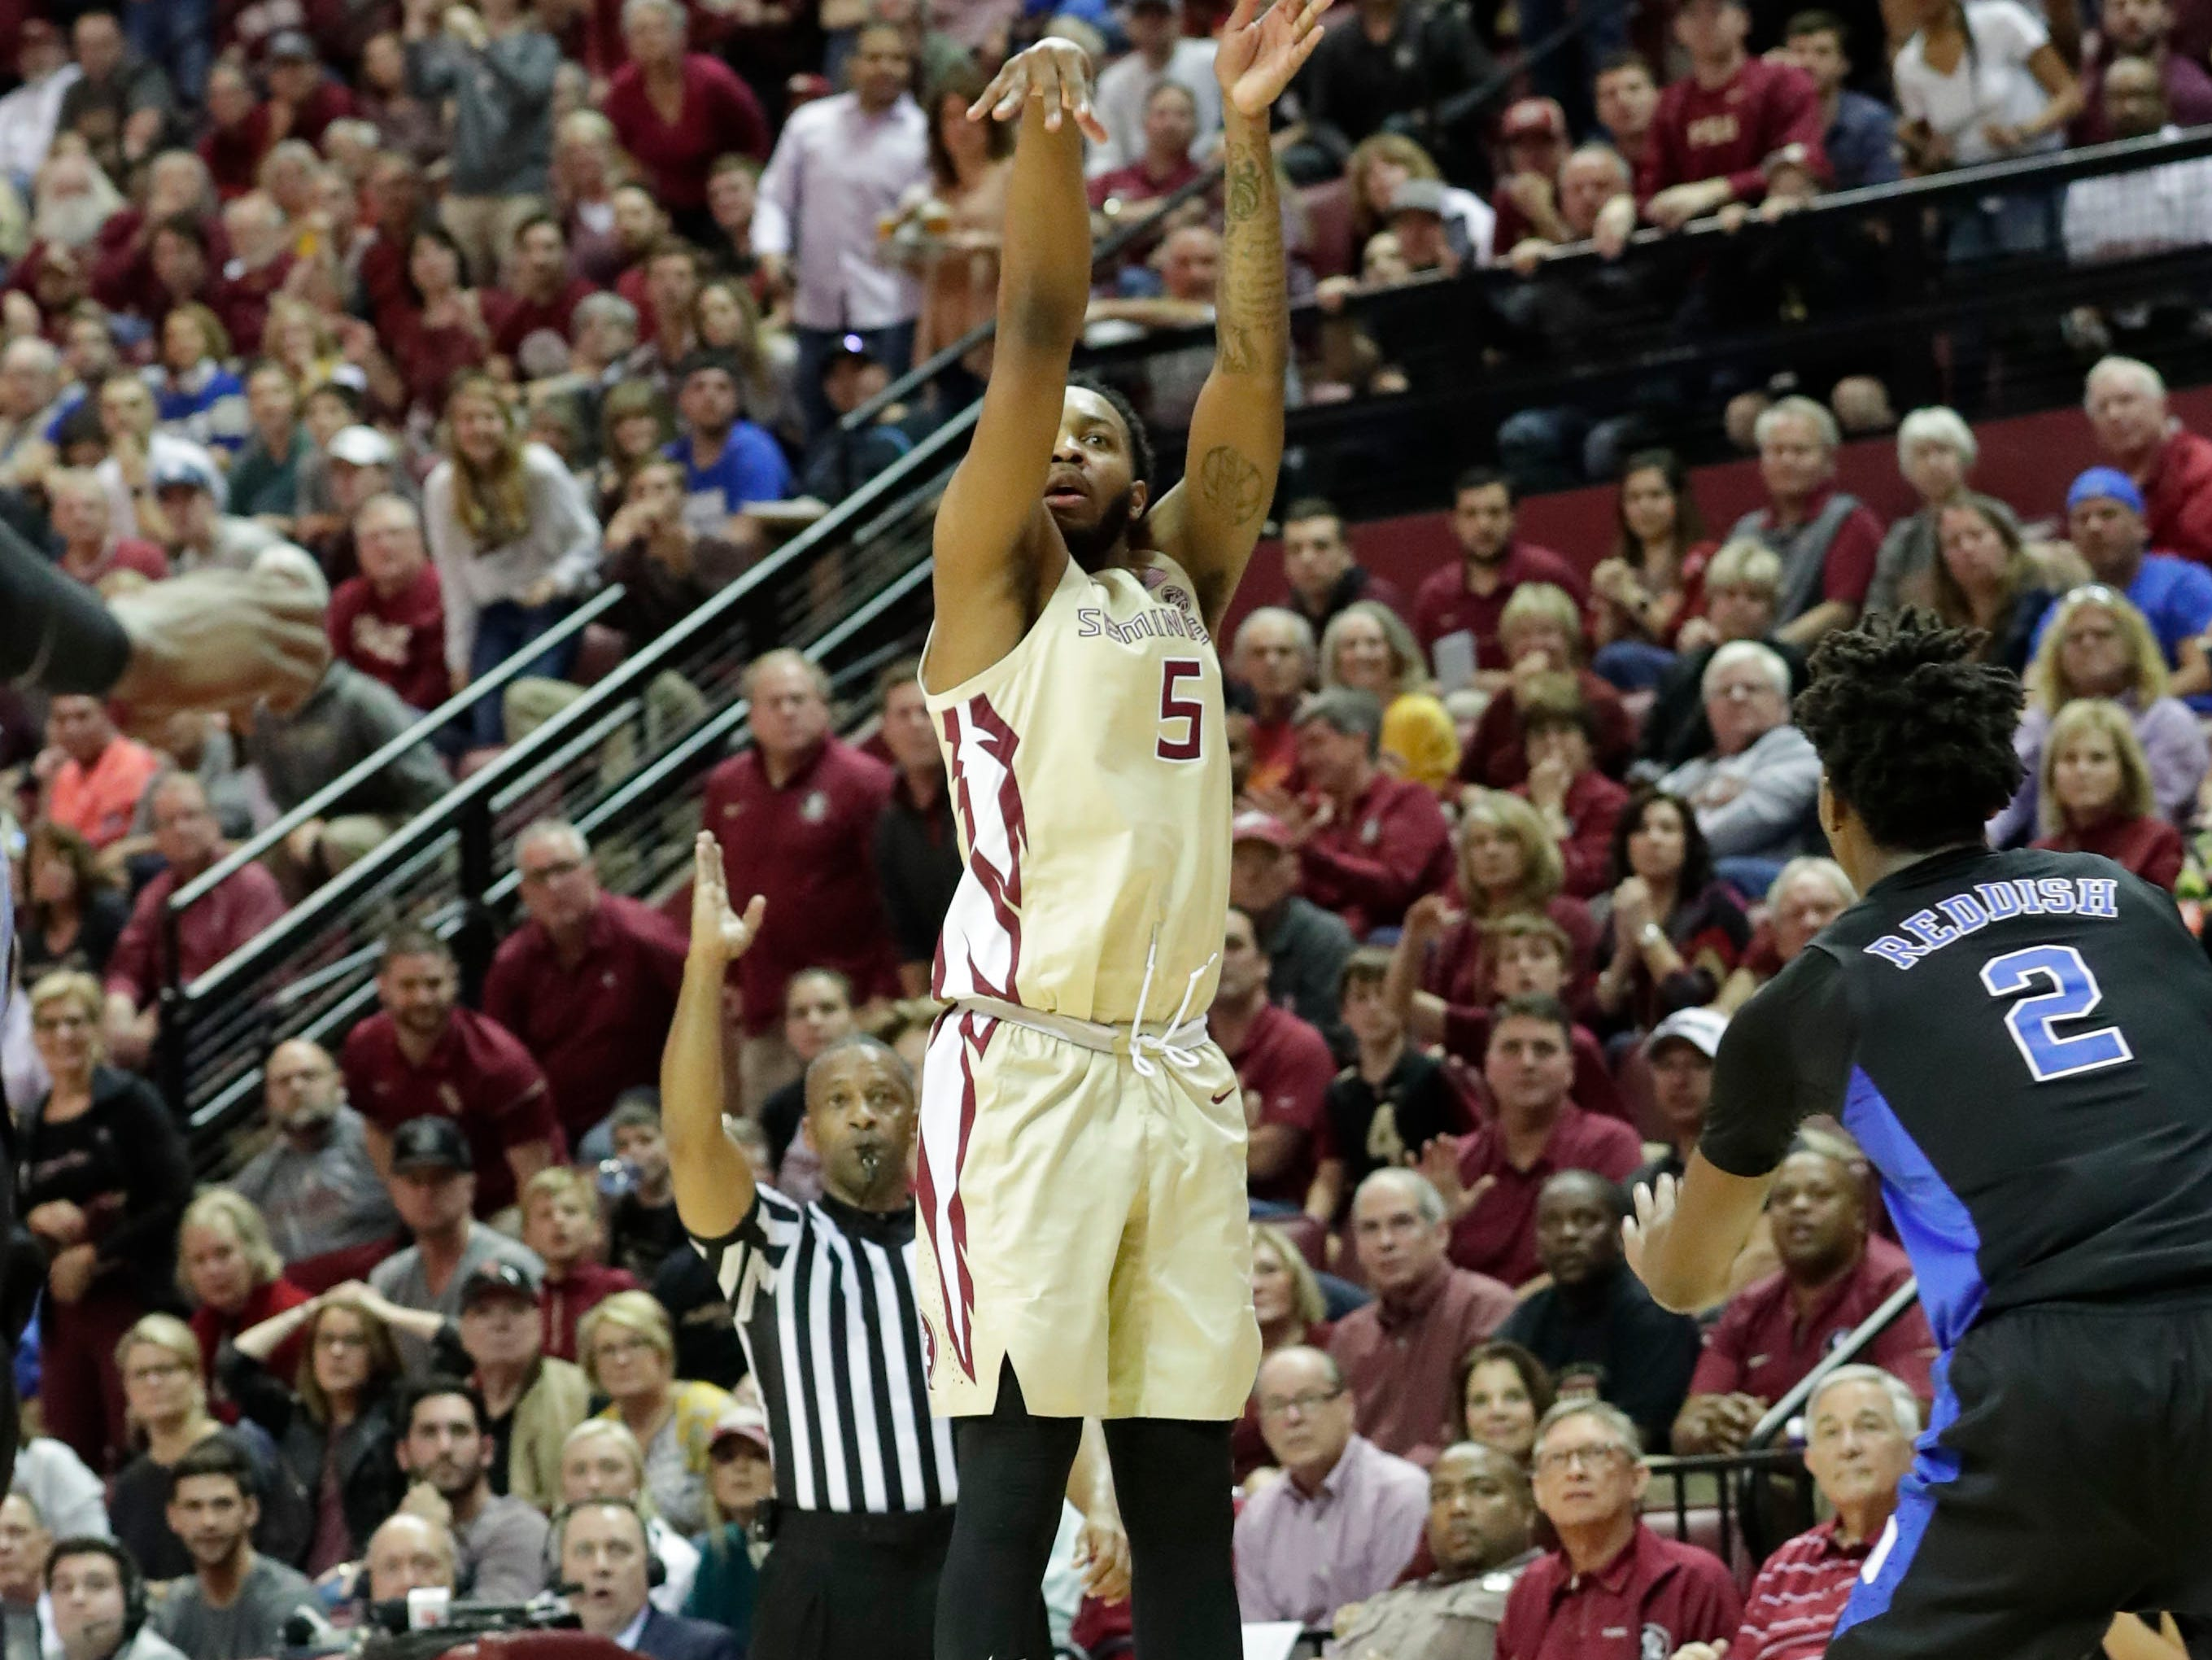 Florida State Seminoles guard PJ Savoy (5) shoots for three. Ranked 13 in the ACC, the Florida State Seminoles host the number 1 team, the Duke Blue Devils, at the Tucker Civic Center, Saturday, Jan. 12, 2019.